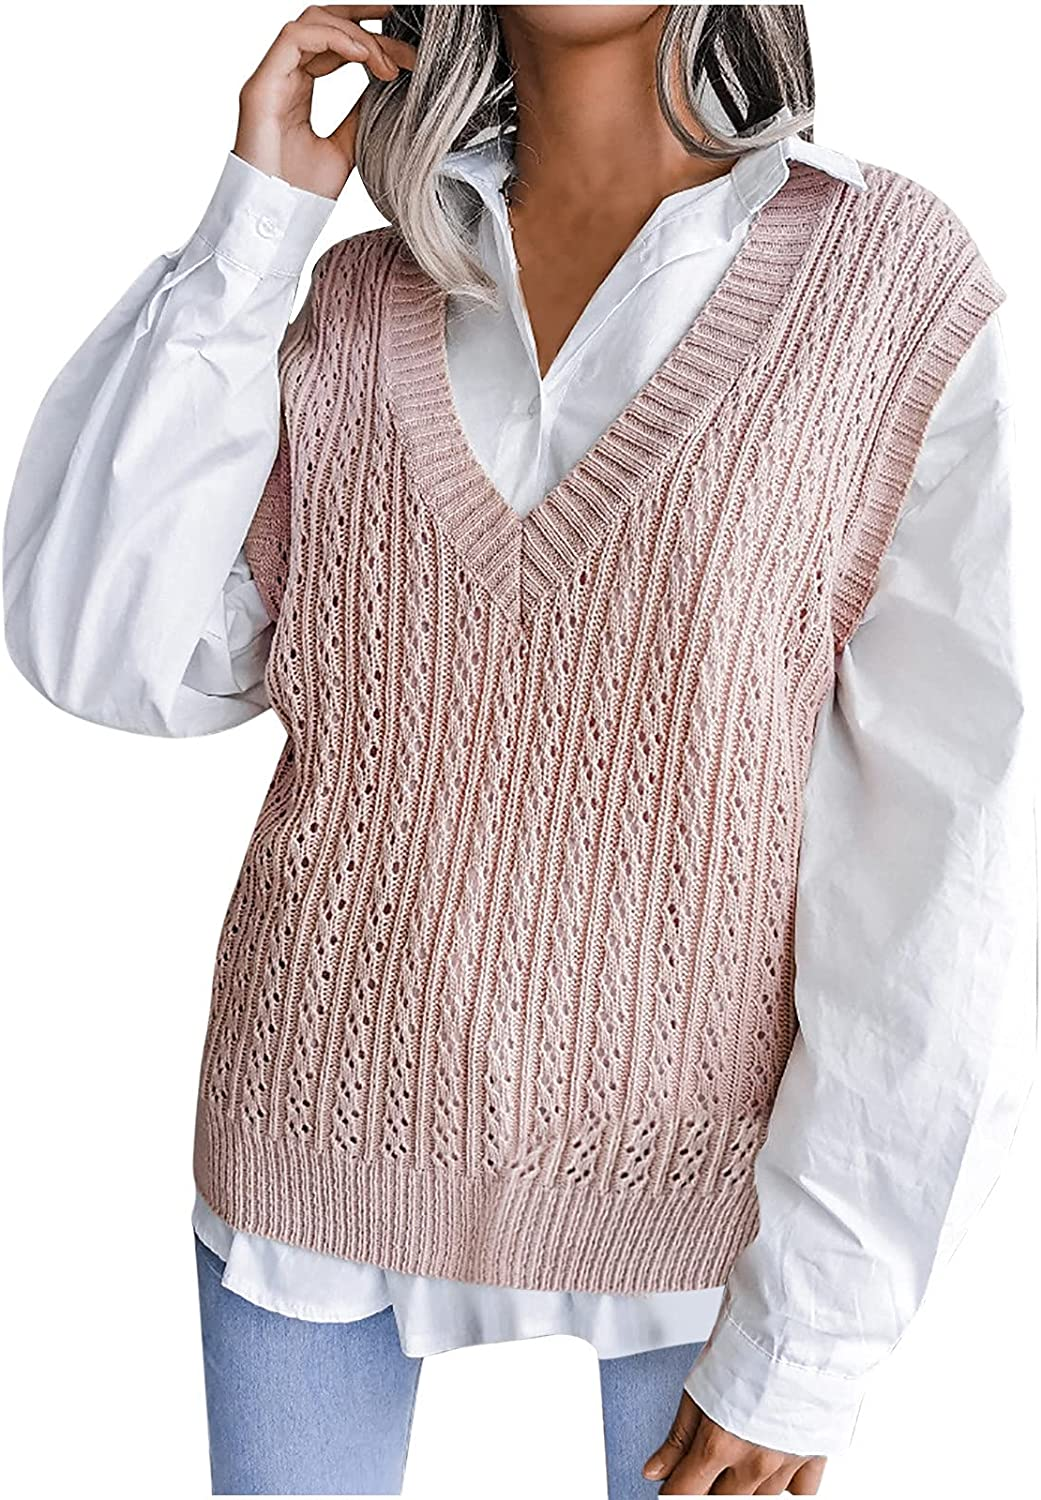 Women Casual V-Neck Hollow Diamond Knitted Vest Sweater Vest Pink